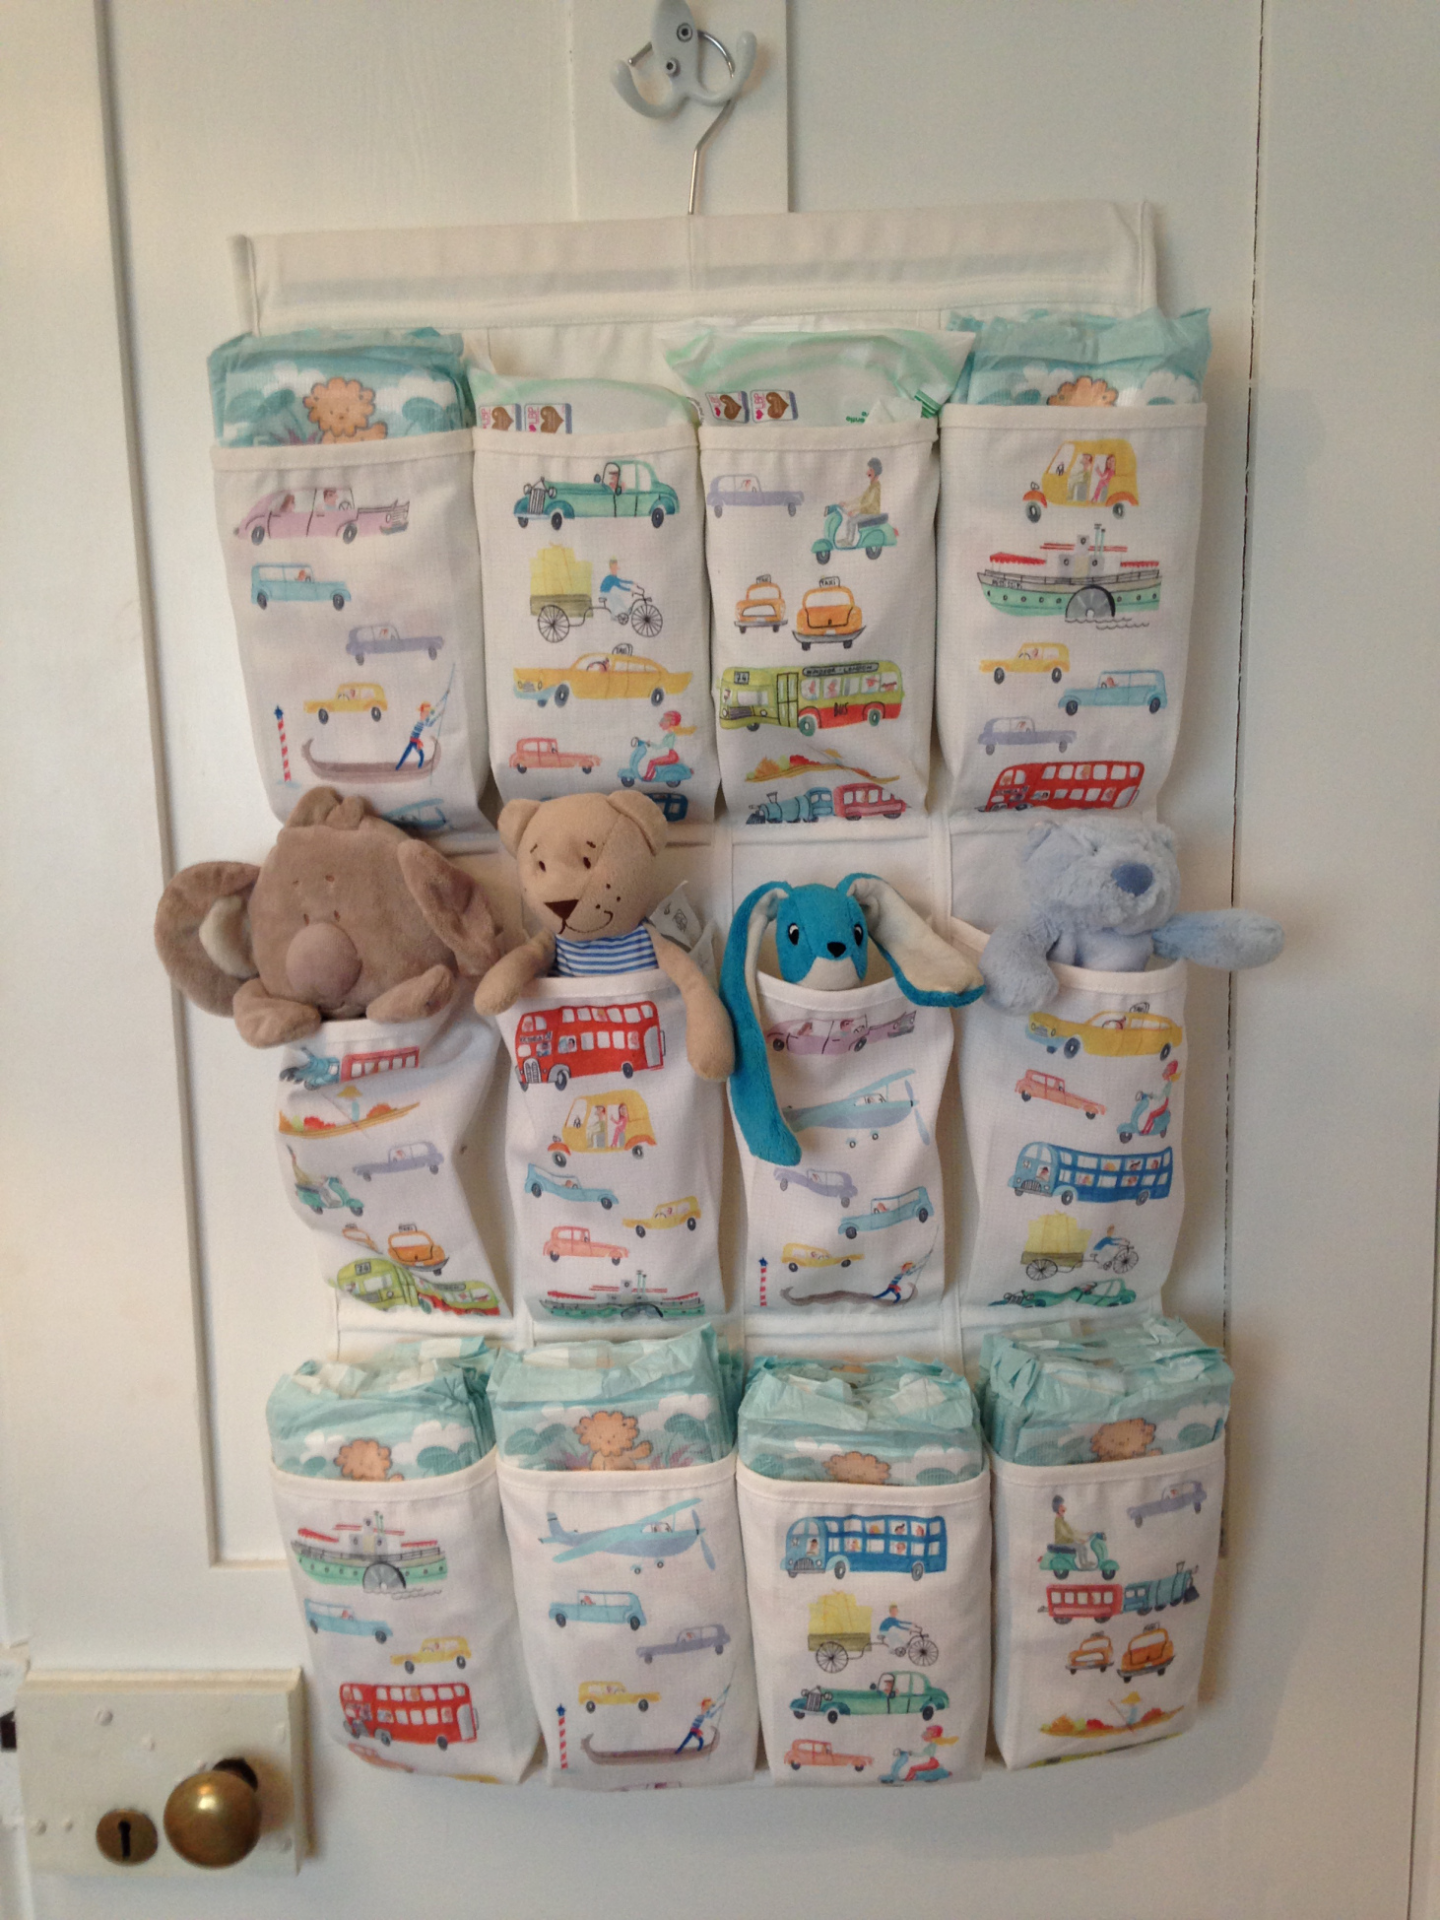 Space Saving Hack for Nappies & Wipes